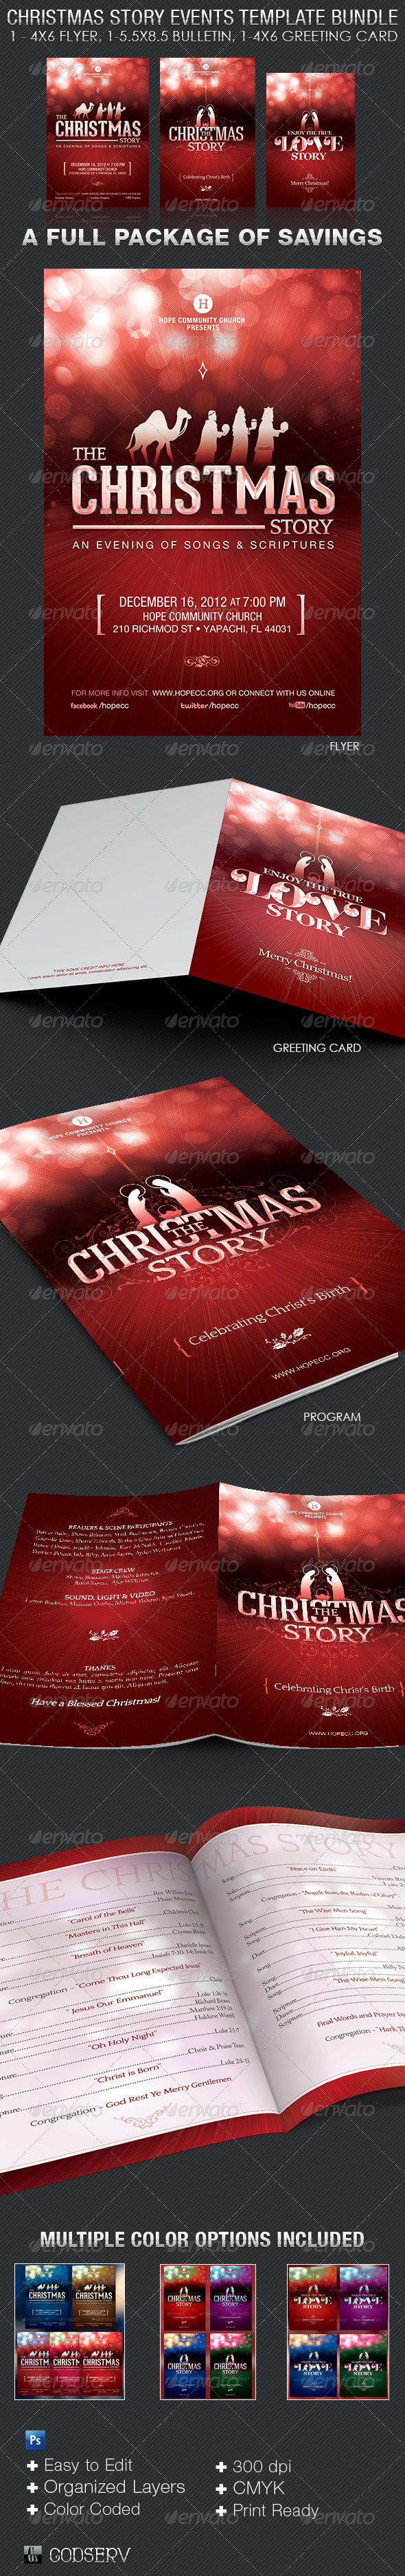 Christmas Story Event Template Bundle - Church Flyers